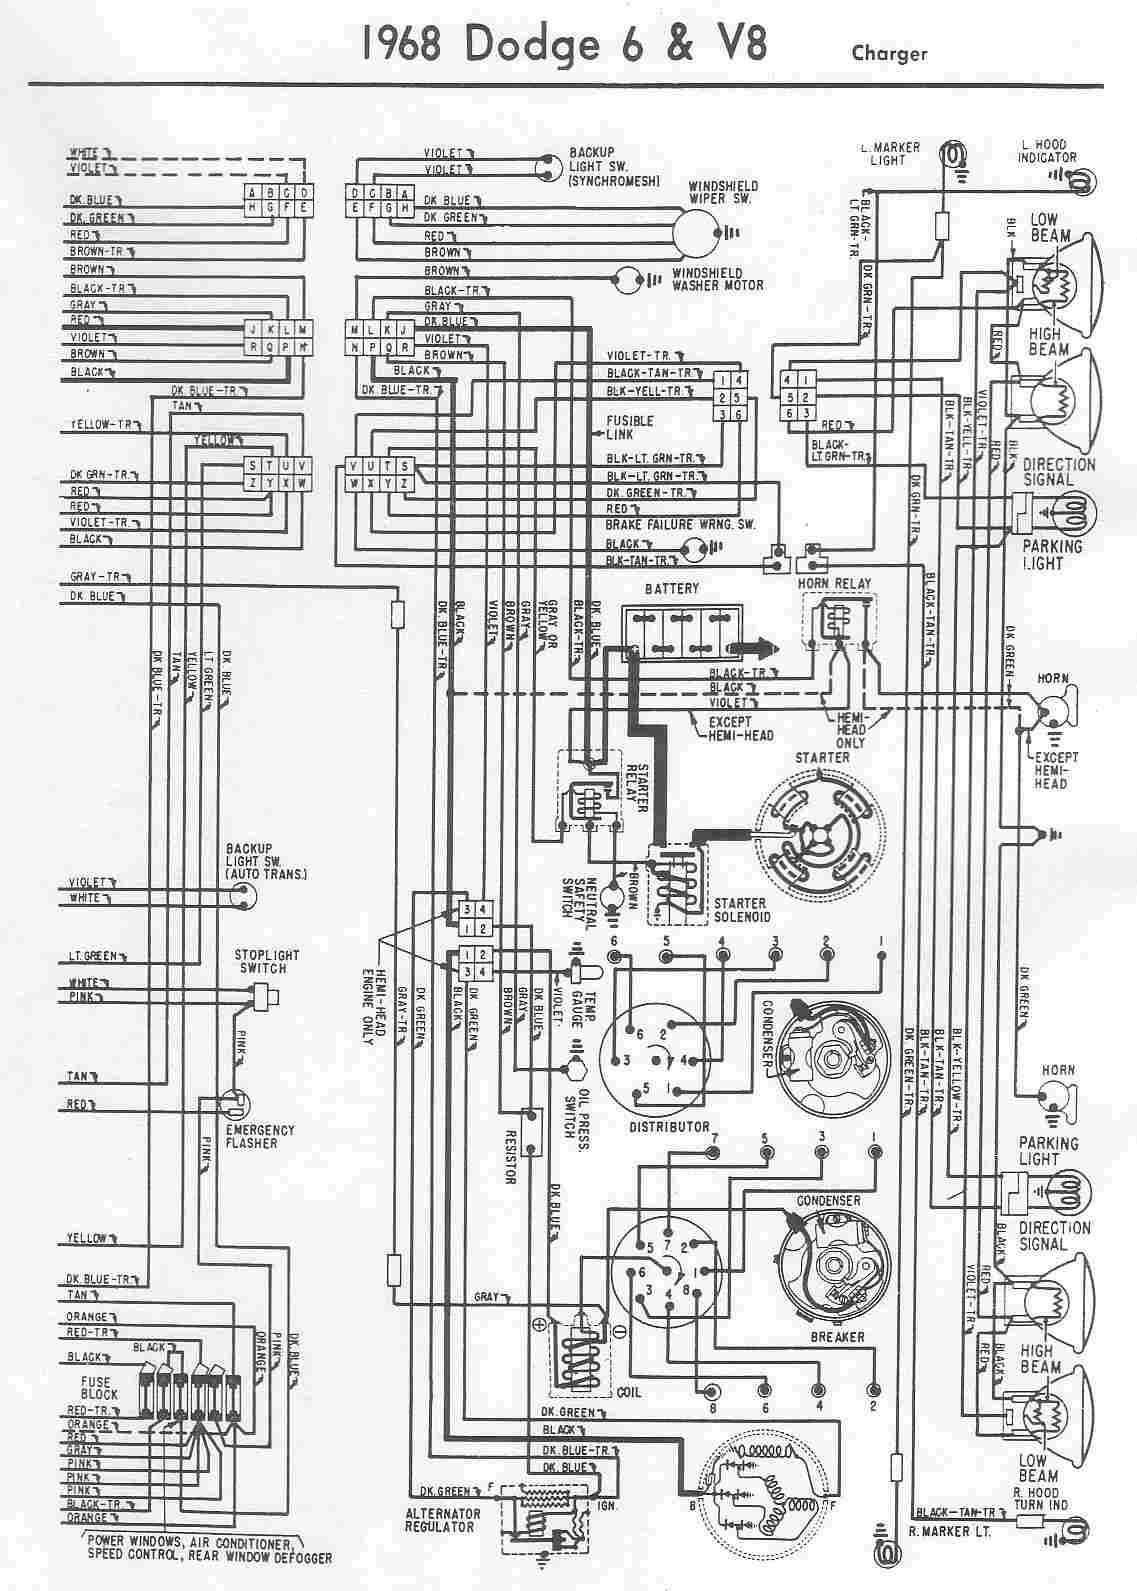 1970 charger wiring diagram [ 1137 x 1591 Pixel ]